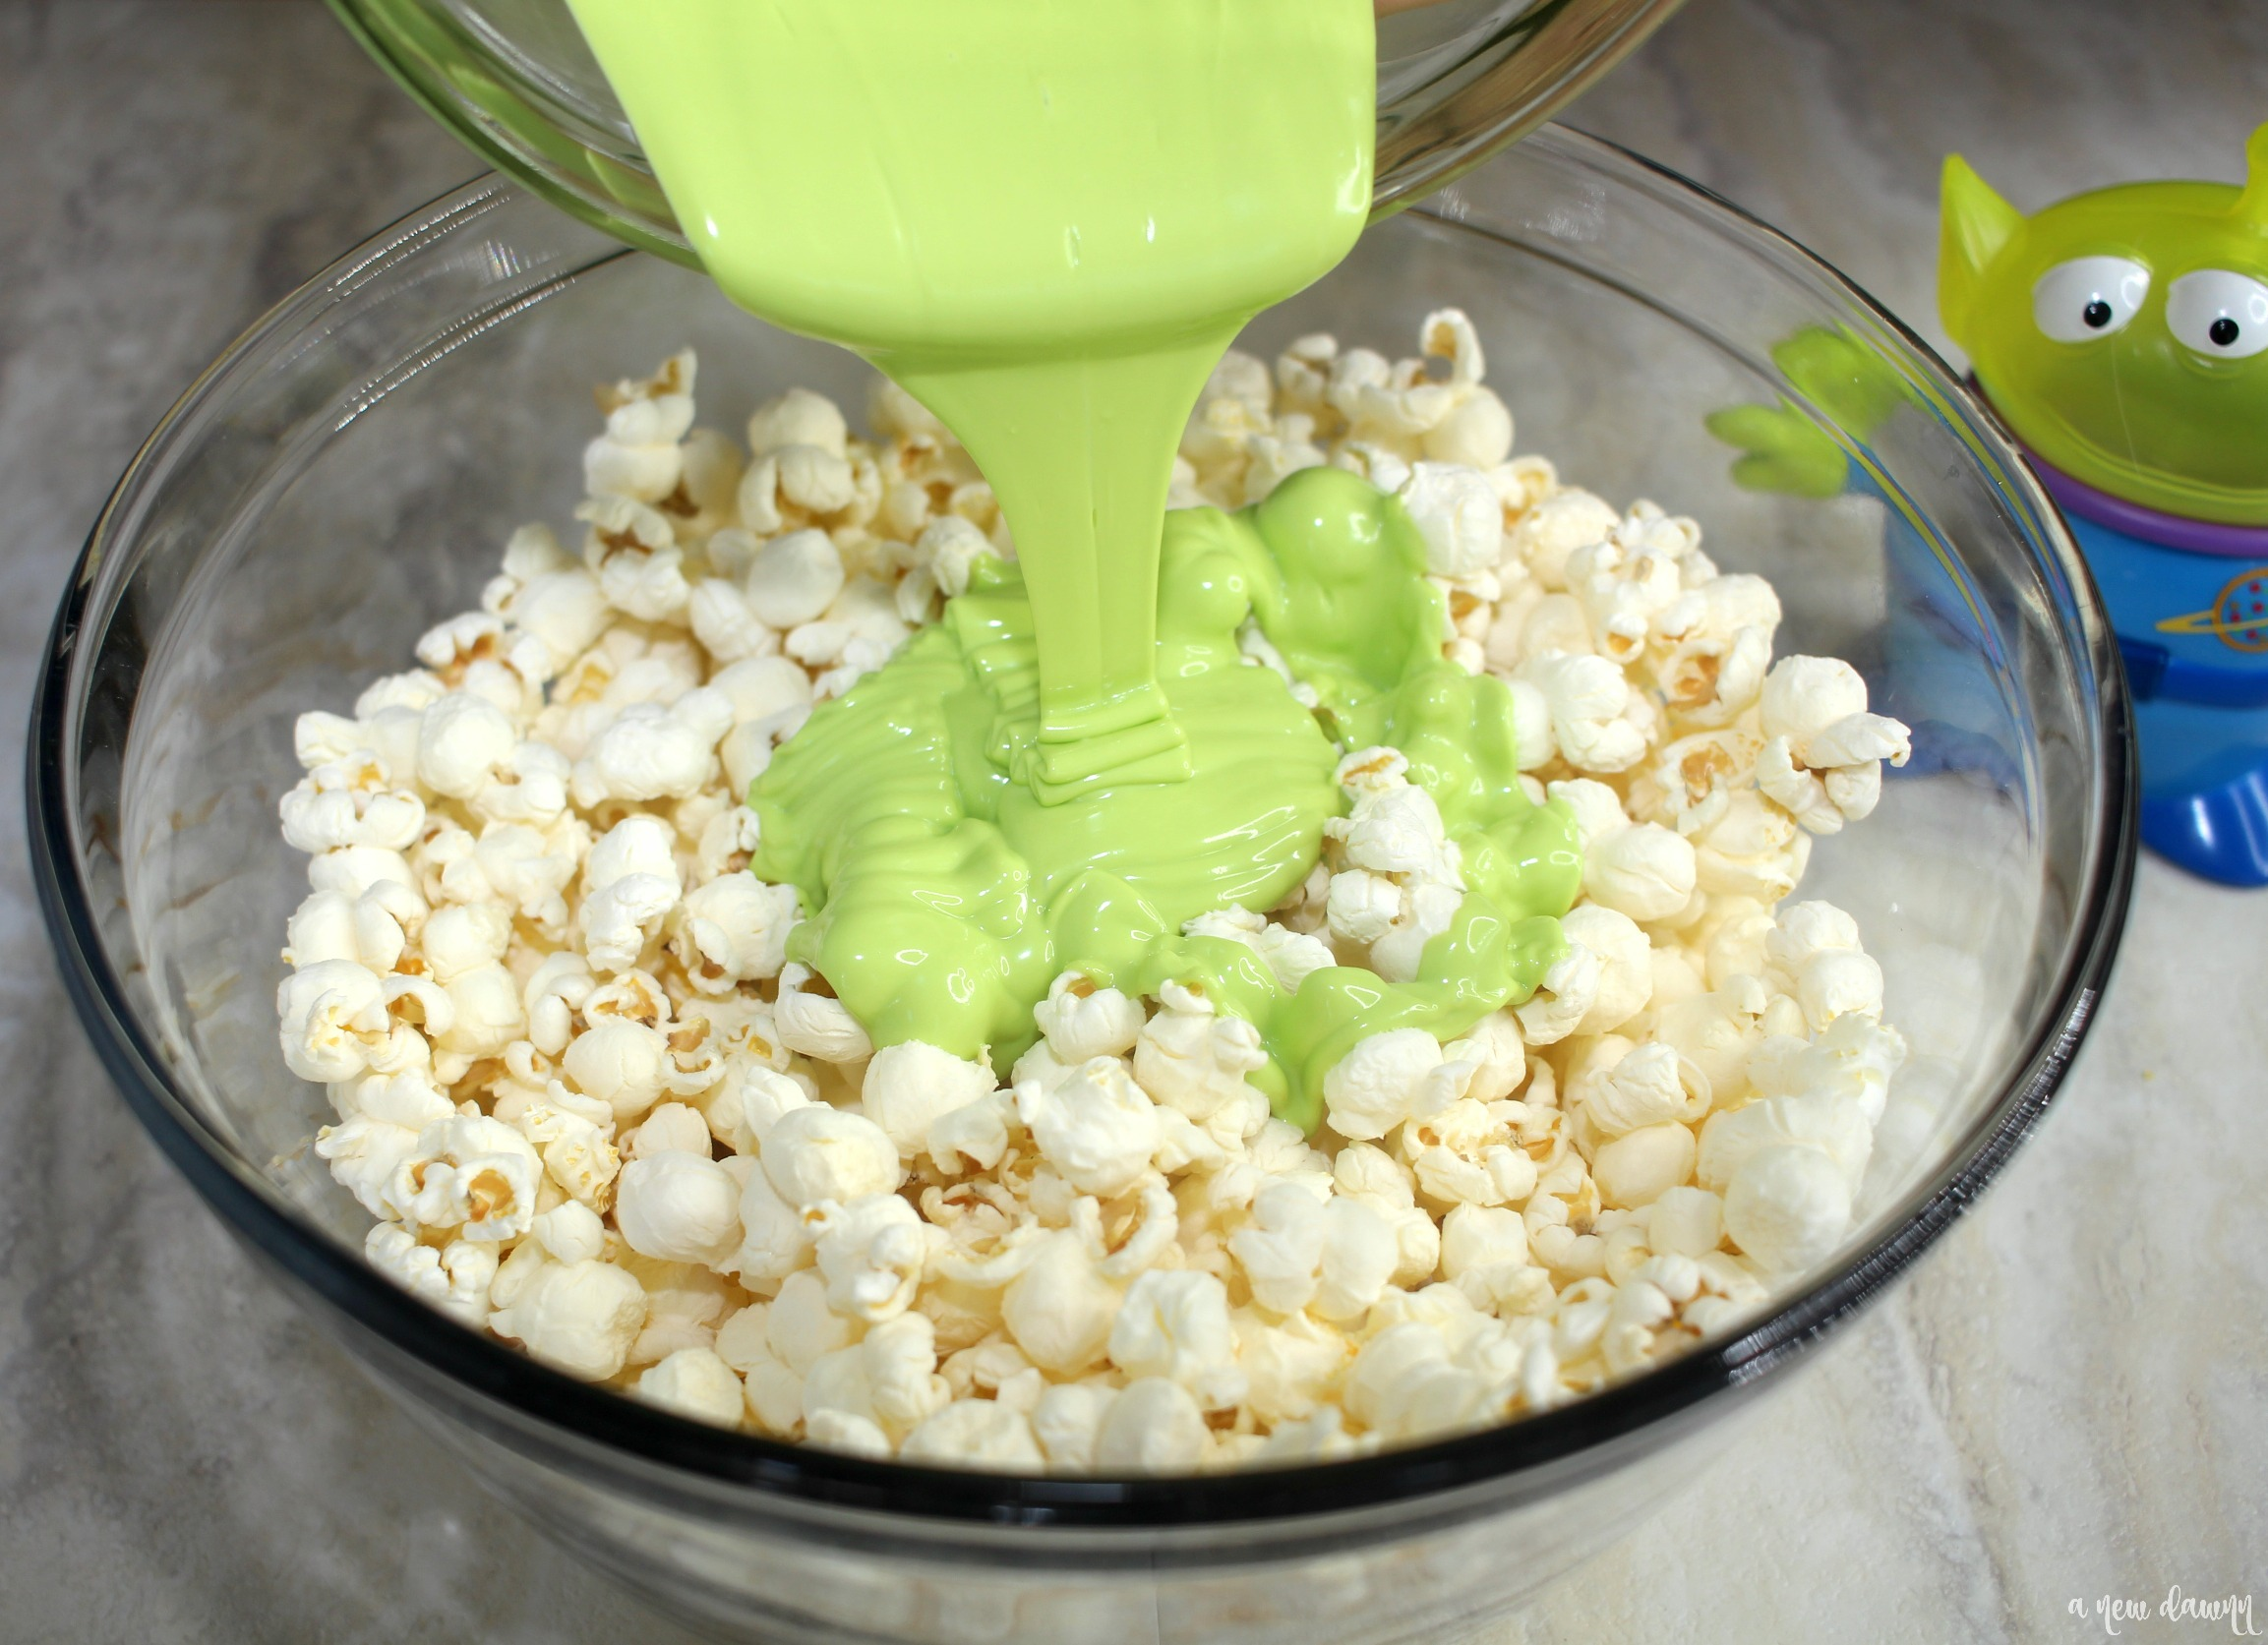 Pouring green melted candy over popcorn